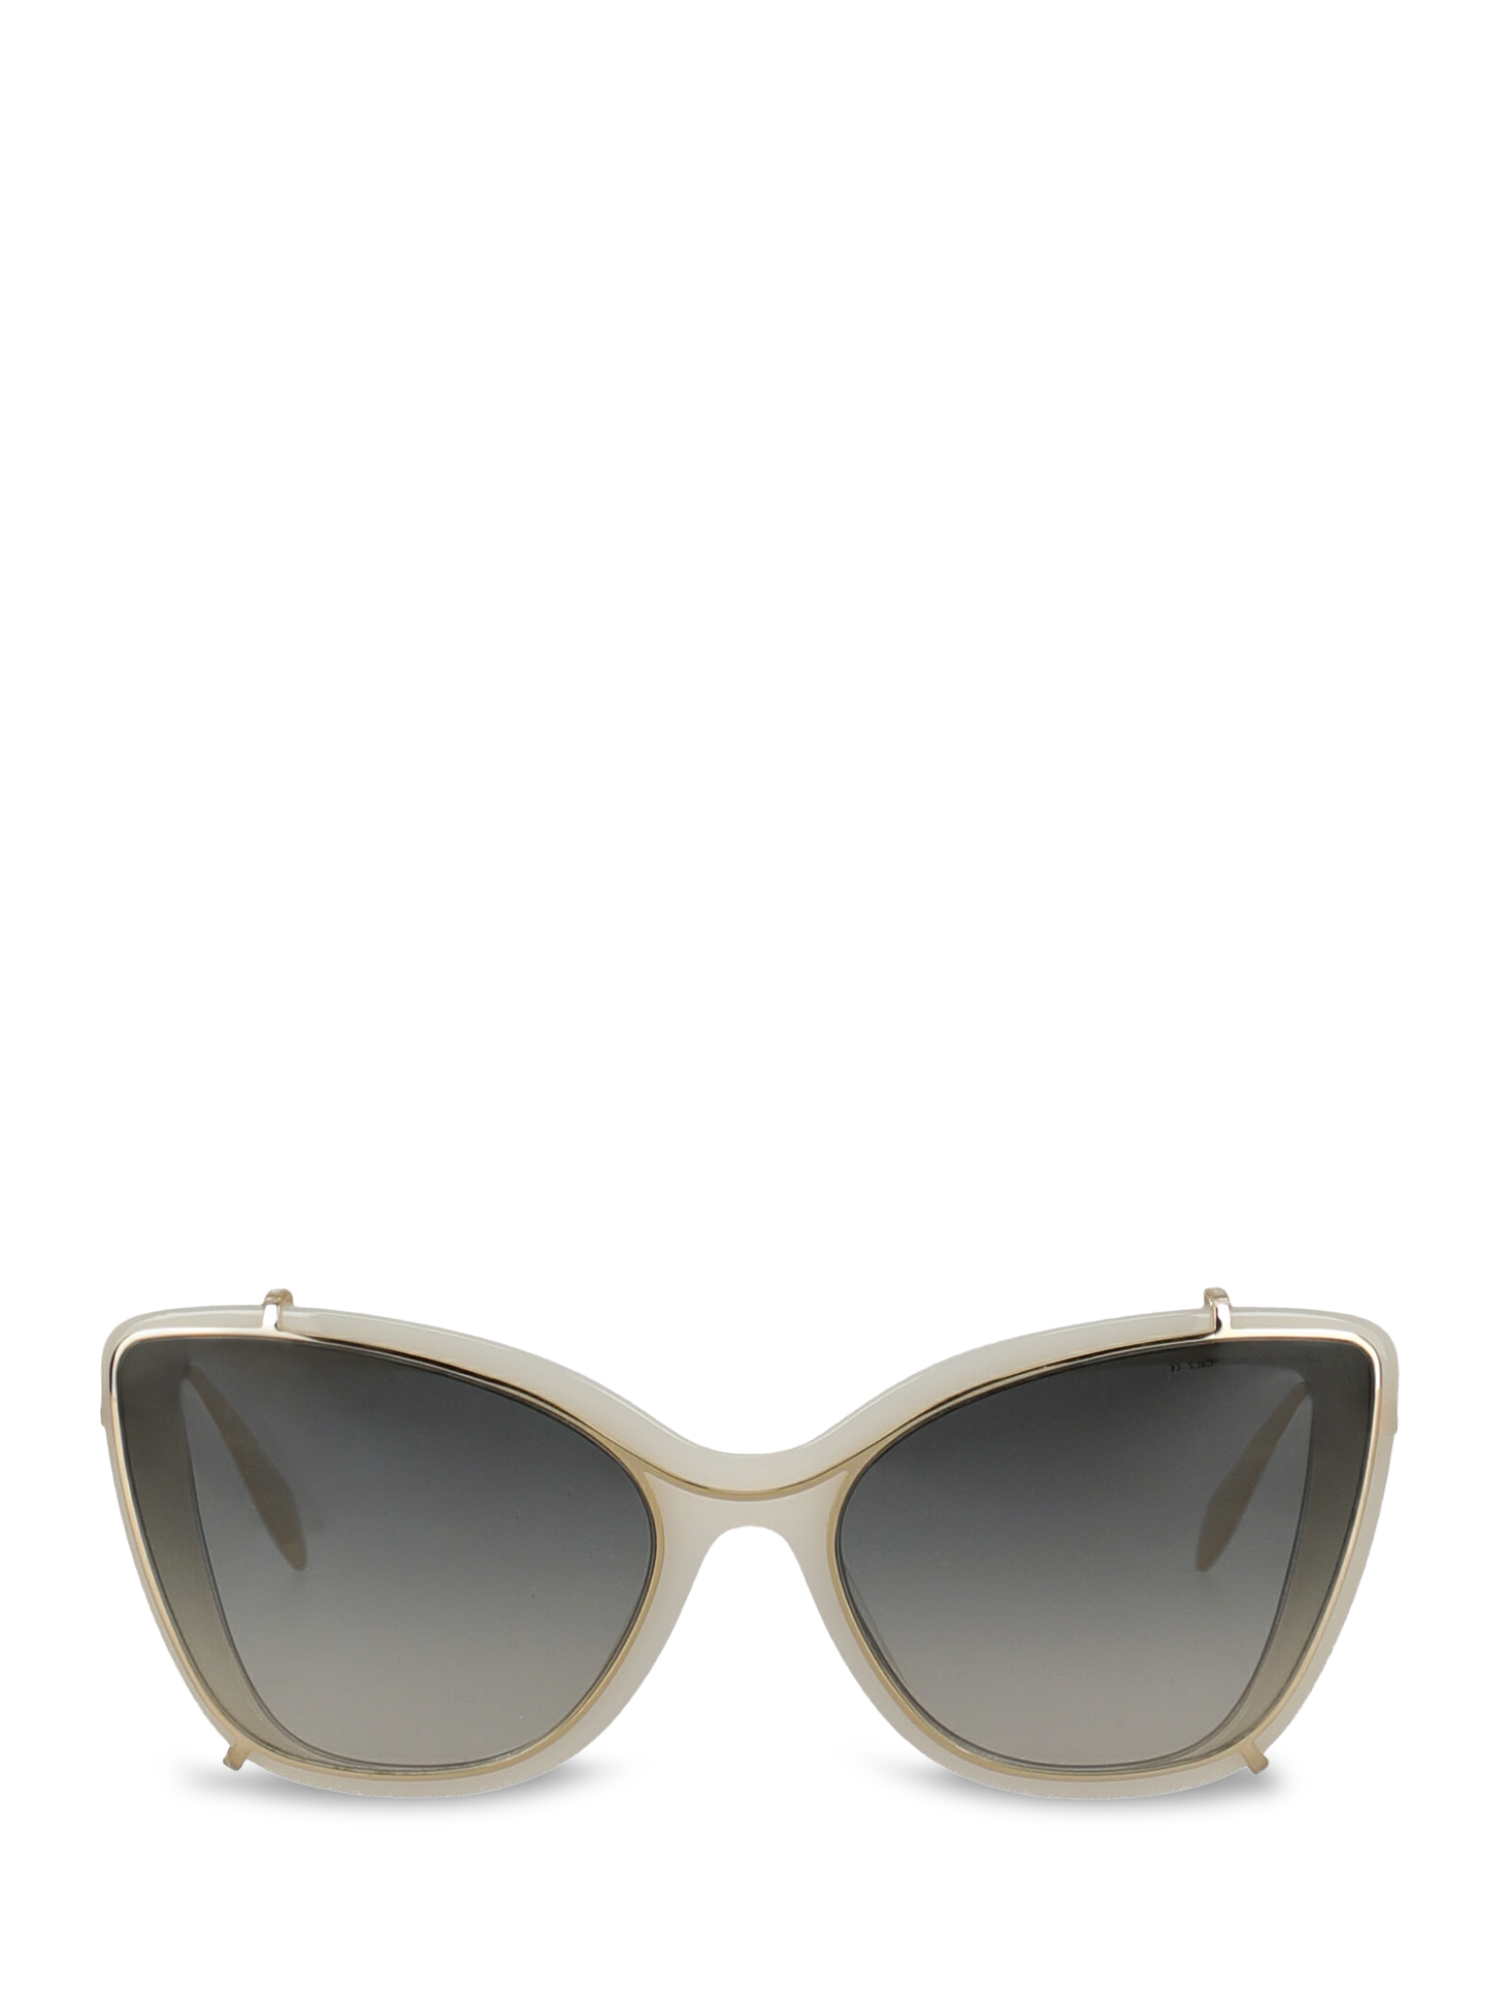 Pre-owned Alexander Mcqueen Woman In Gold, White